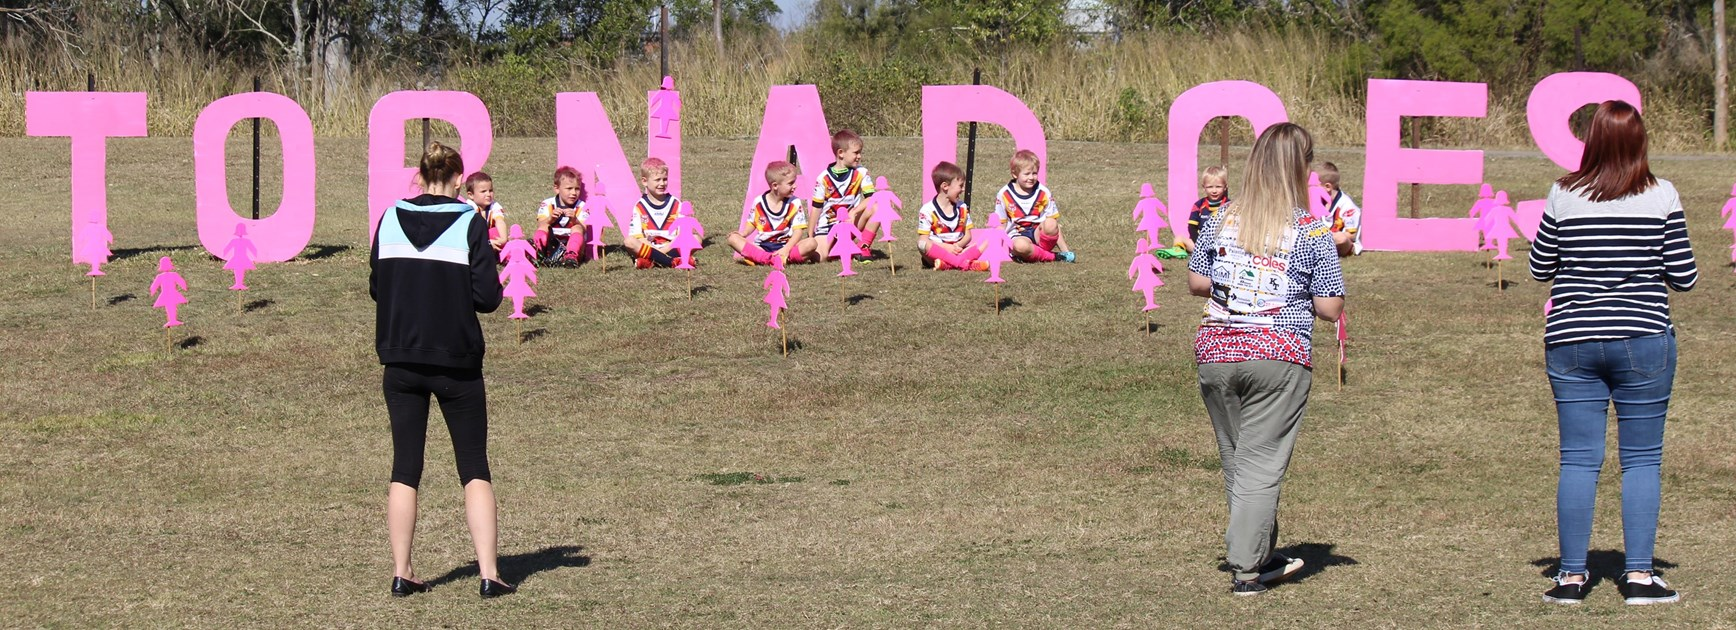 Karalee goes pink to support a great cause